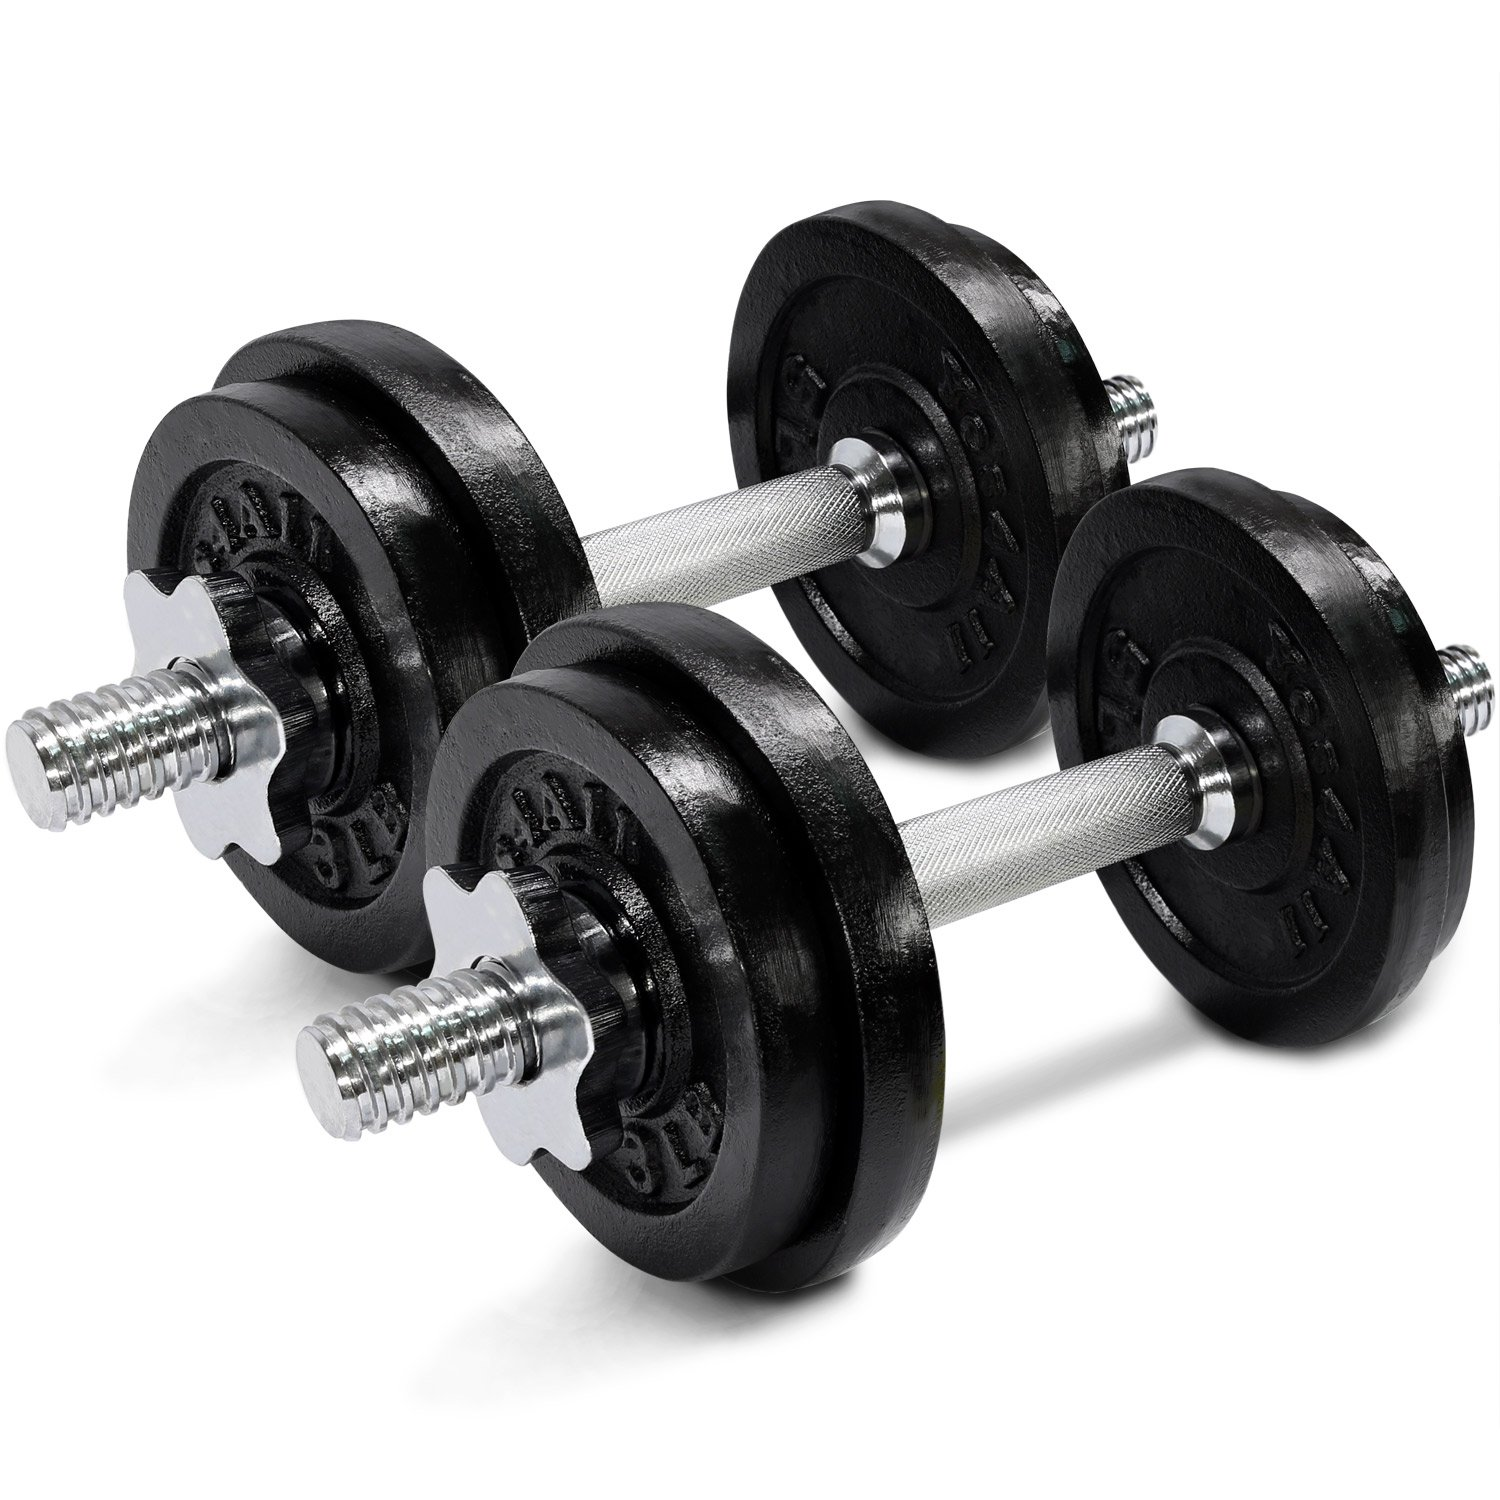 Yes4All Adjustable Dumbbells, 40.00 Pounds by Yes4All (Image #1)